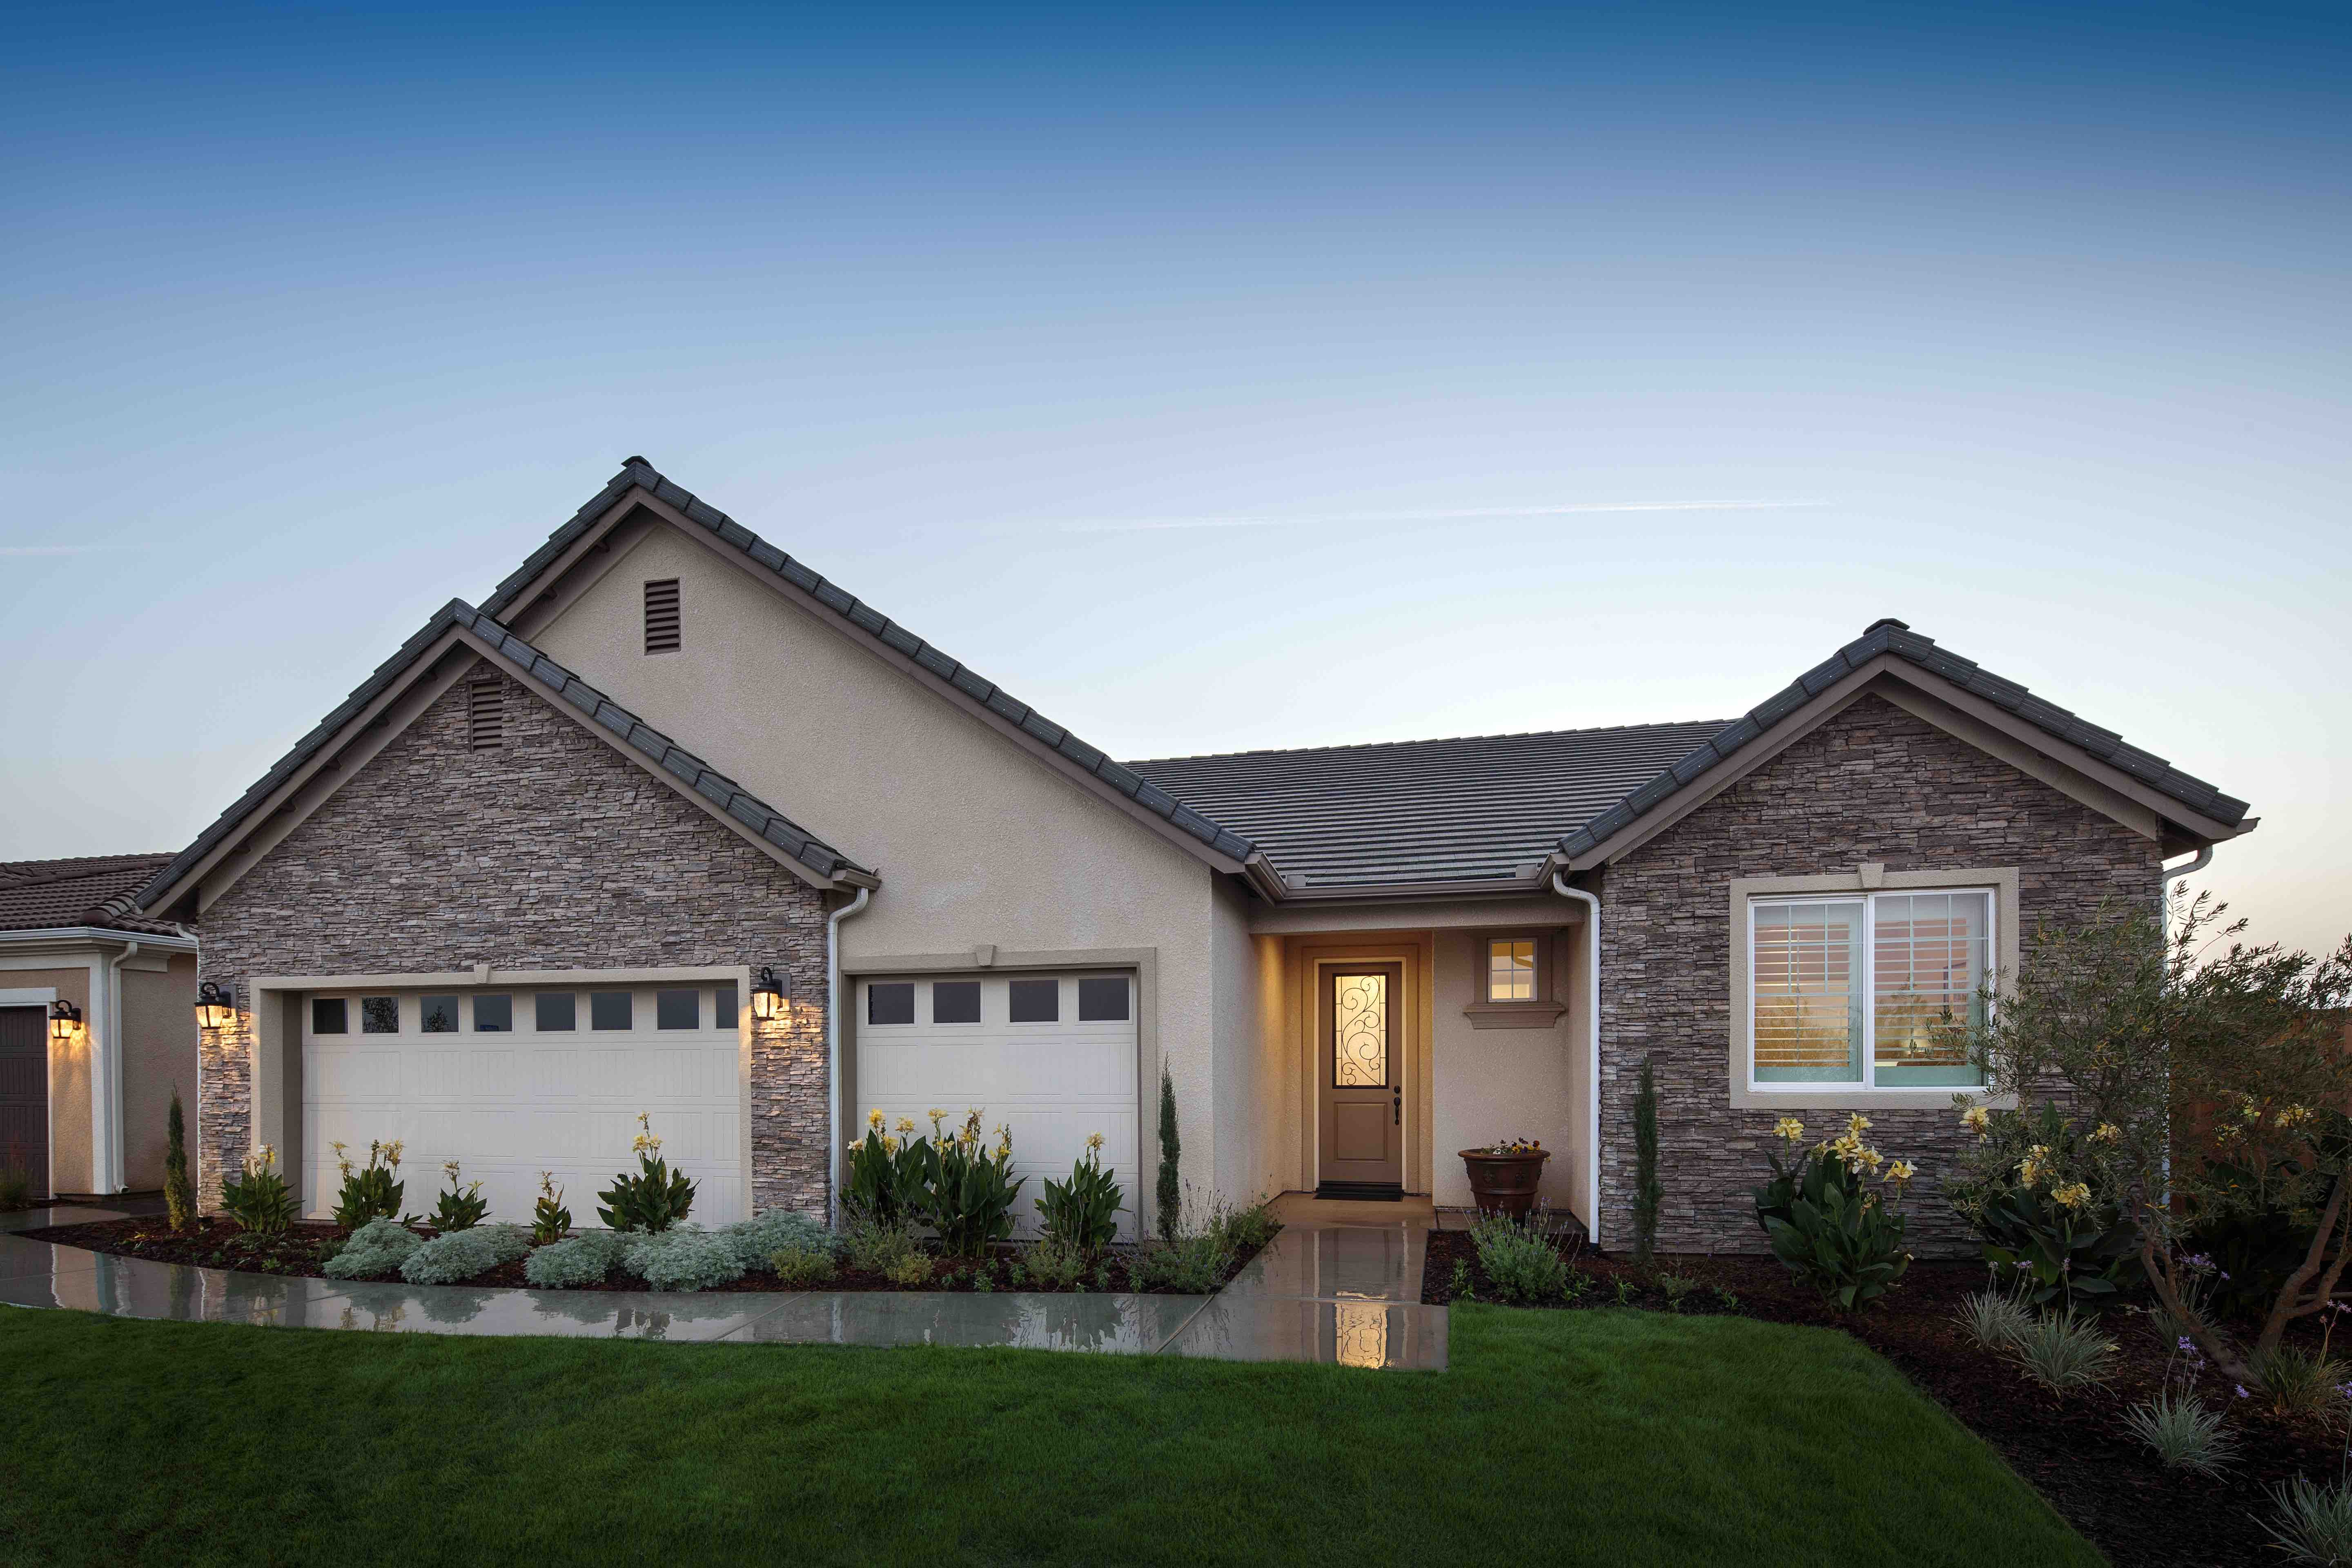 The Coronado plan with a French Country styled exterior at twilight